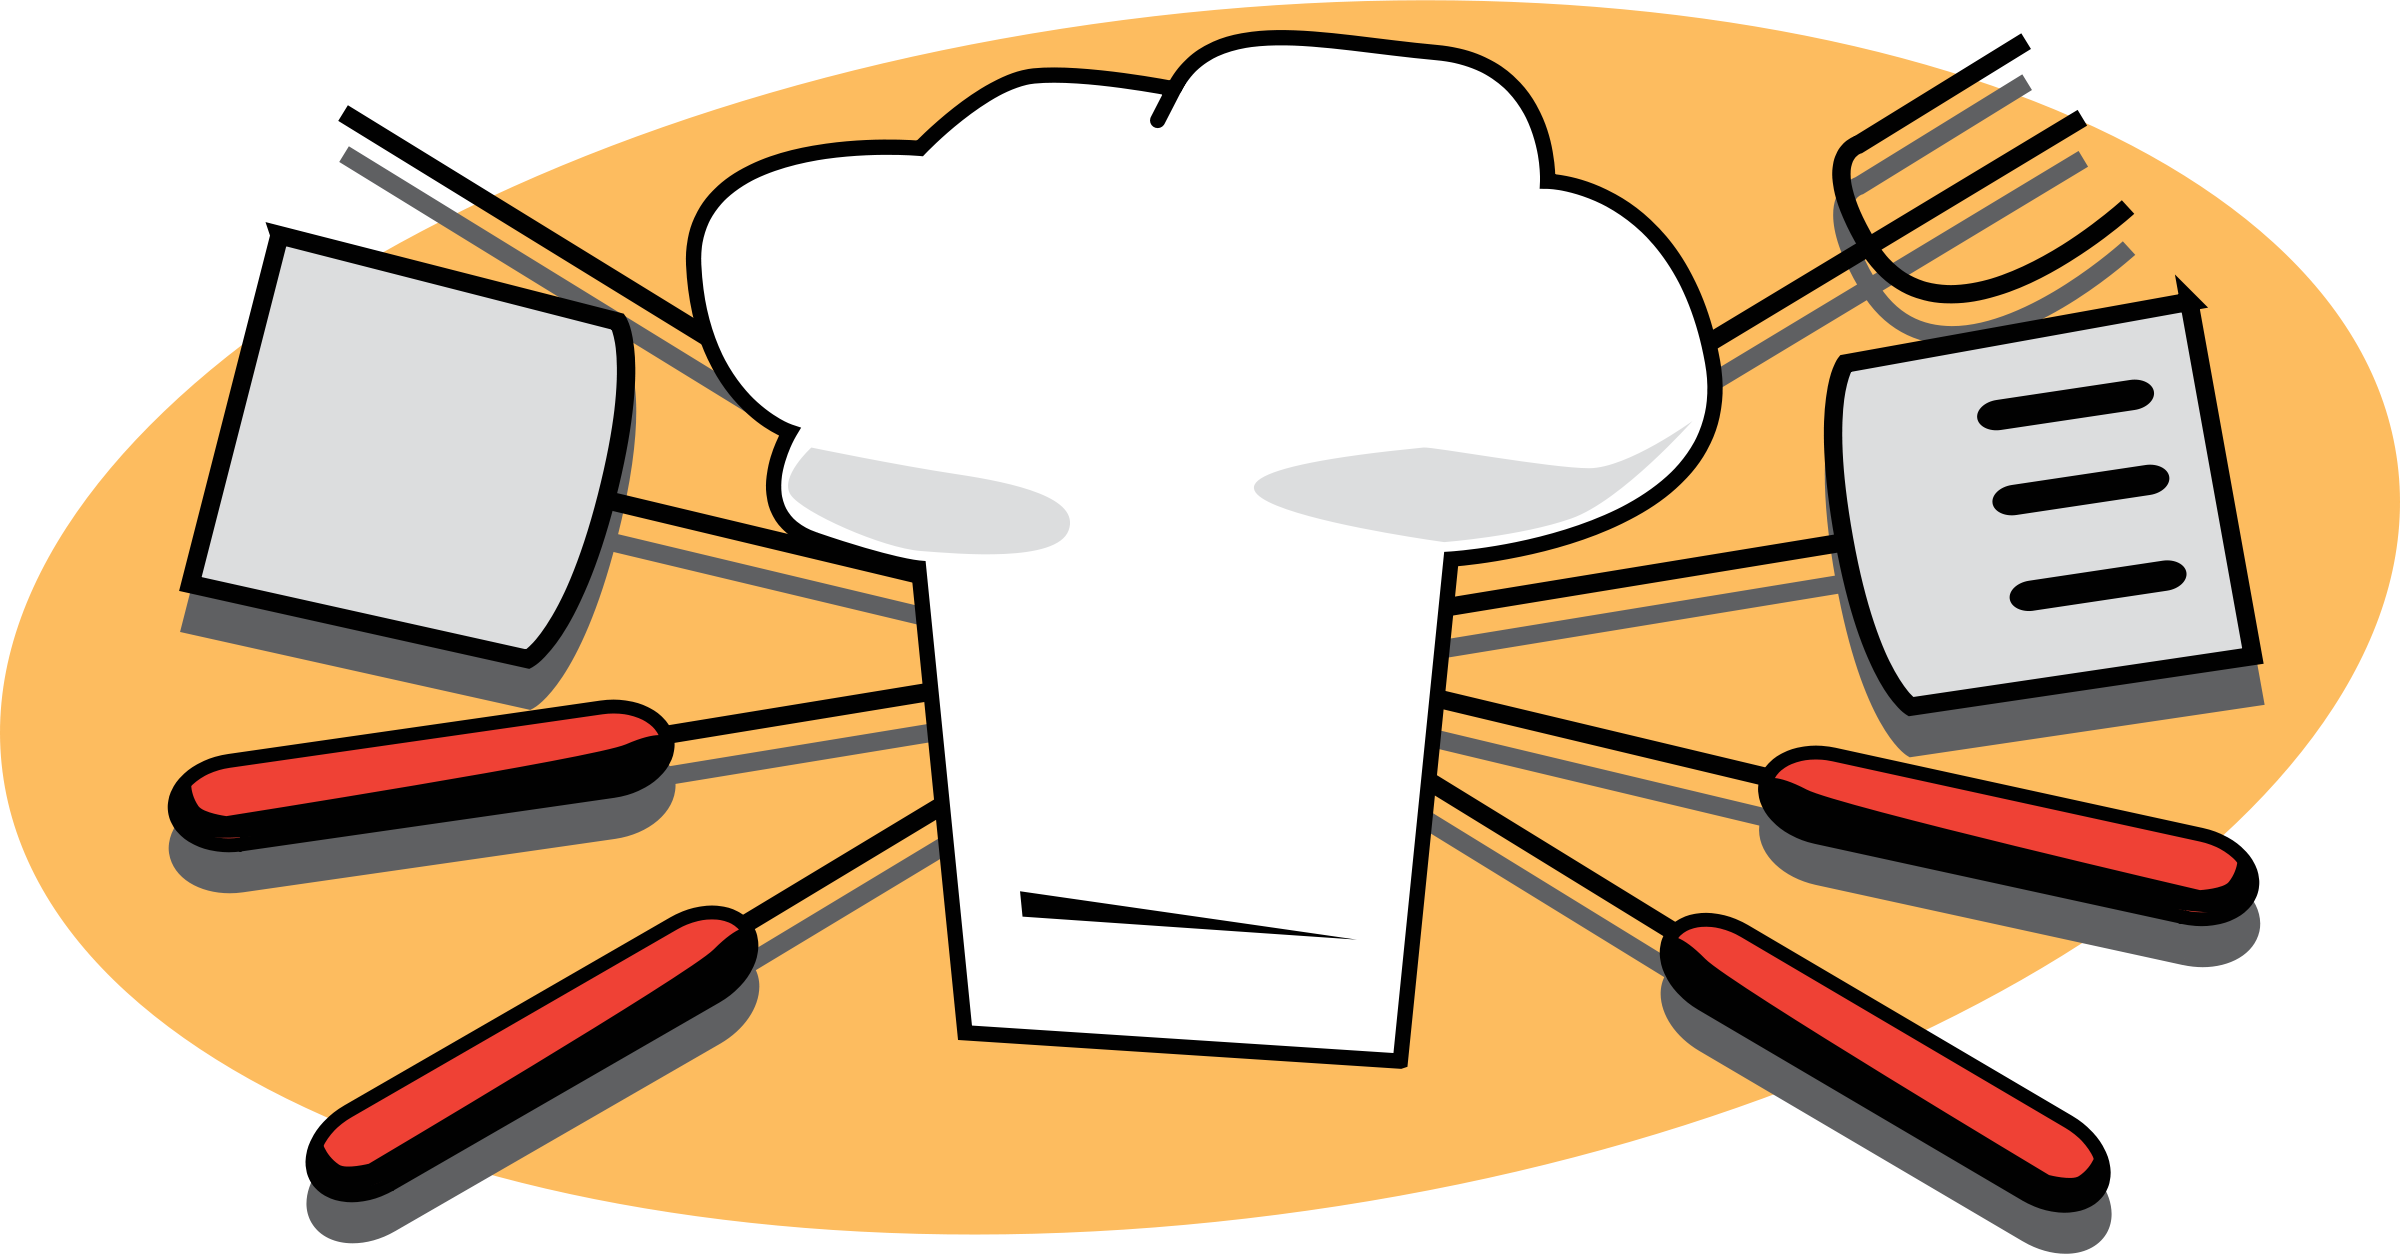 Grilling clipart bbq word. Grill with fire free